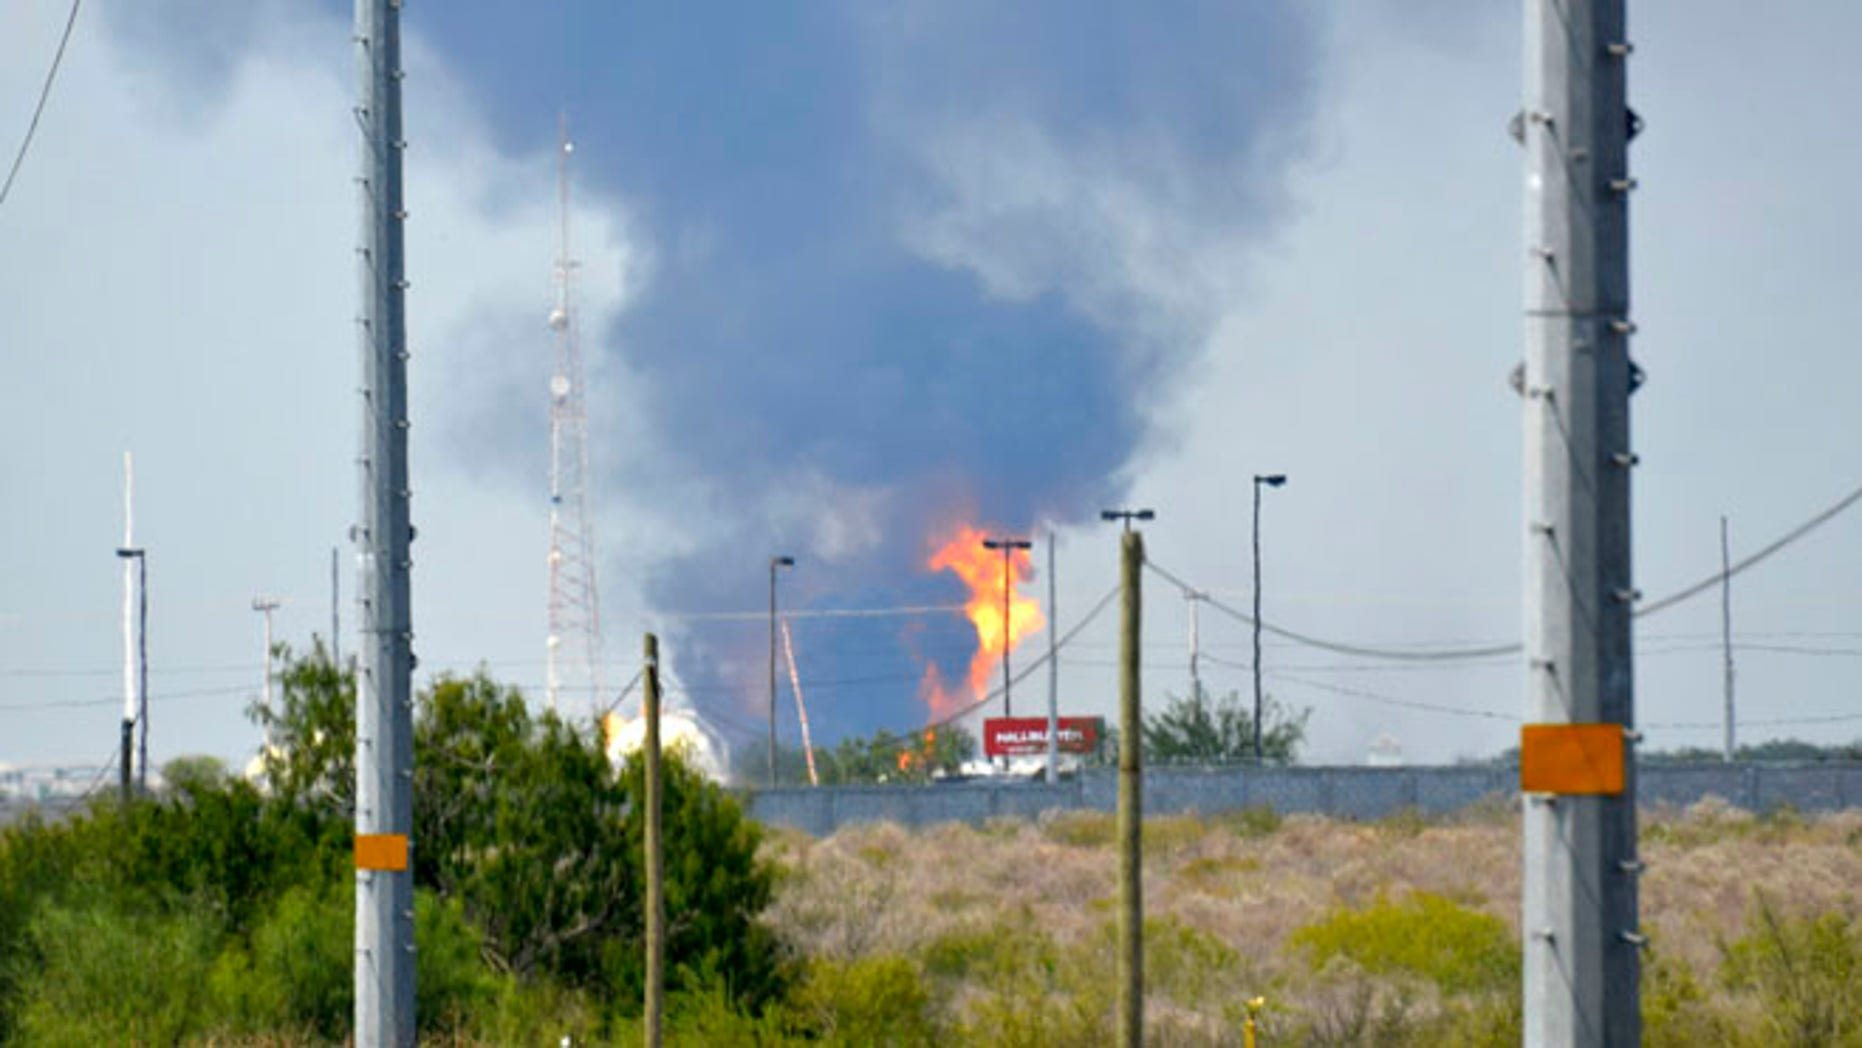 Sept. 18, 2012: Fire and smoke rise from a gas pipeline distribution center in Reynosa, Mexico near Mexico's border with the United States.